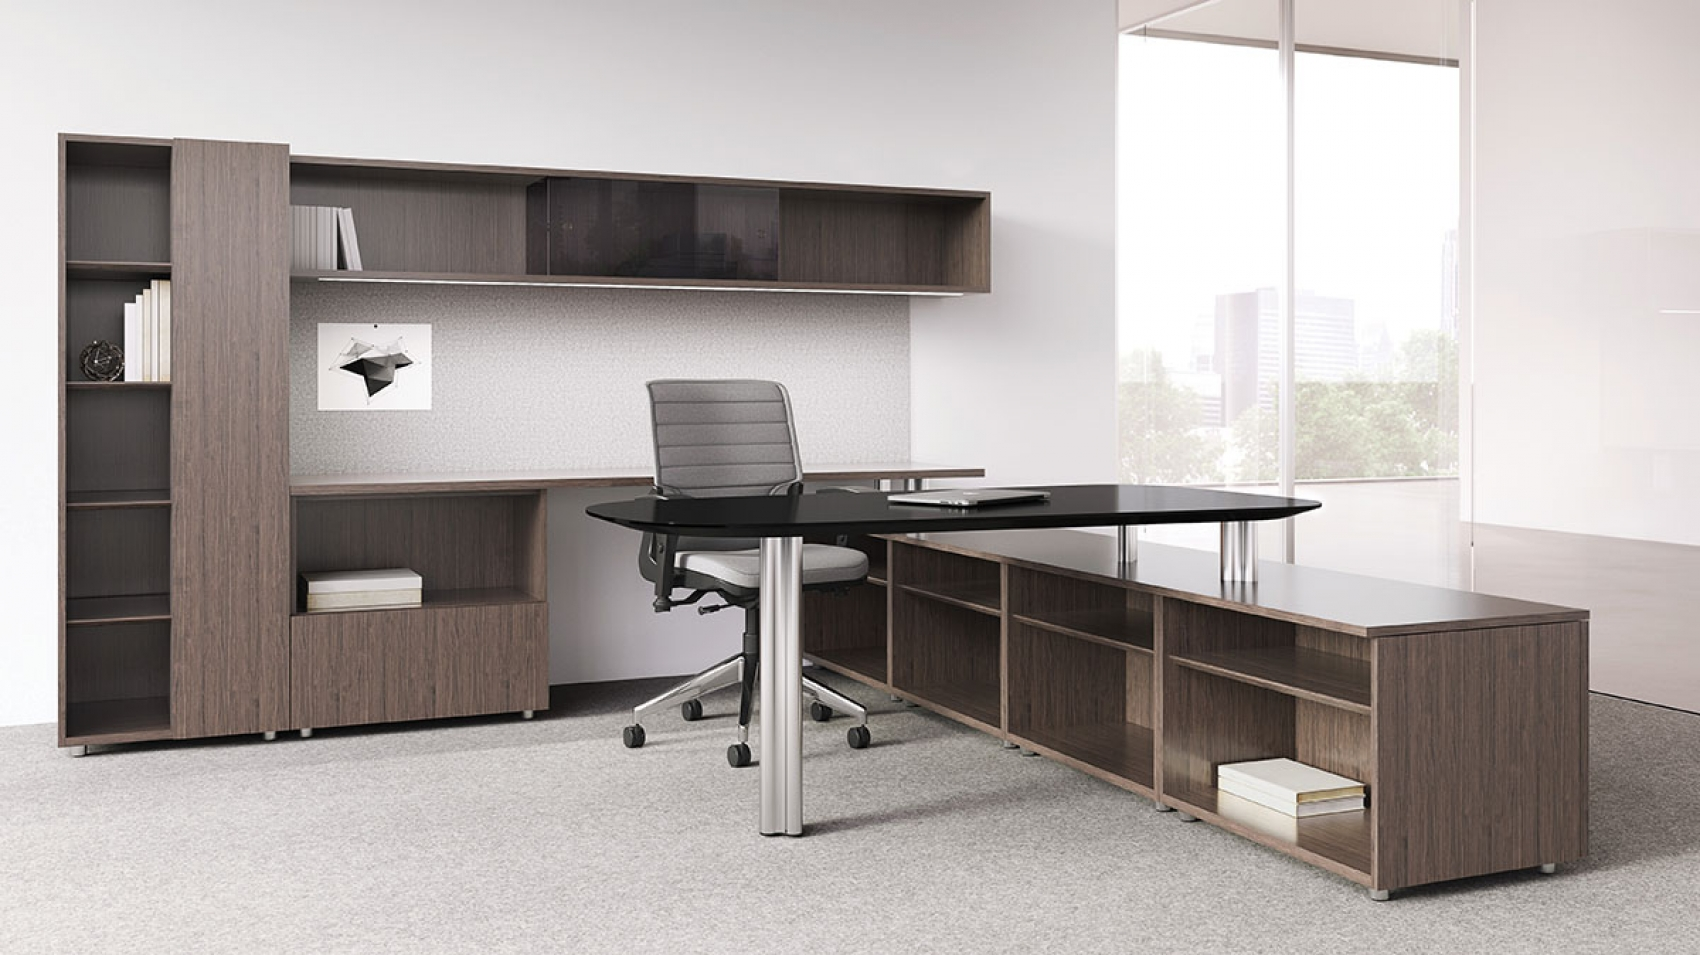 Ofs Office Furniture Property Inspiration Aptos  Ofs Design Ideas